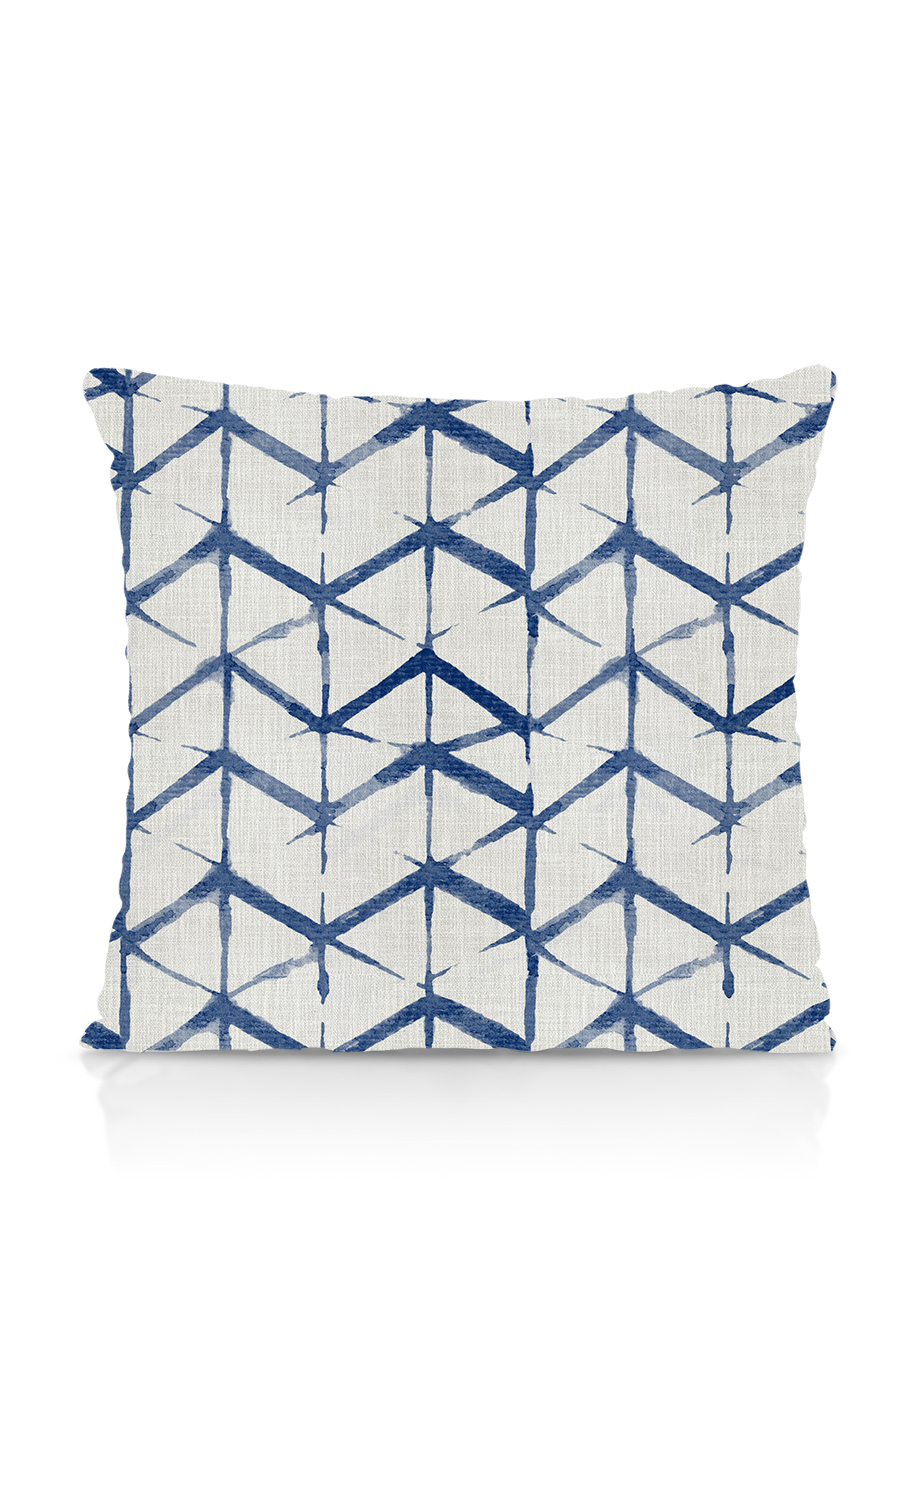 Abstract Custom Cushions For Living Room